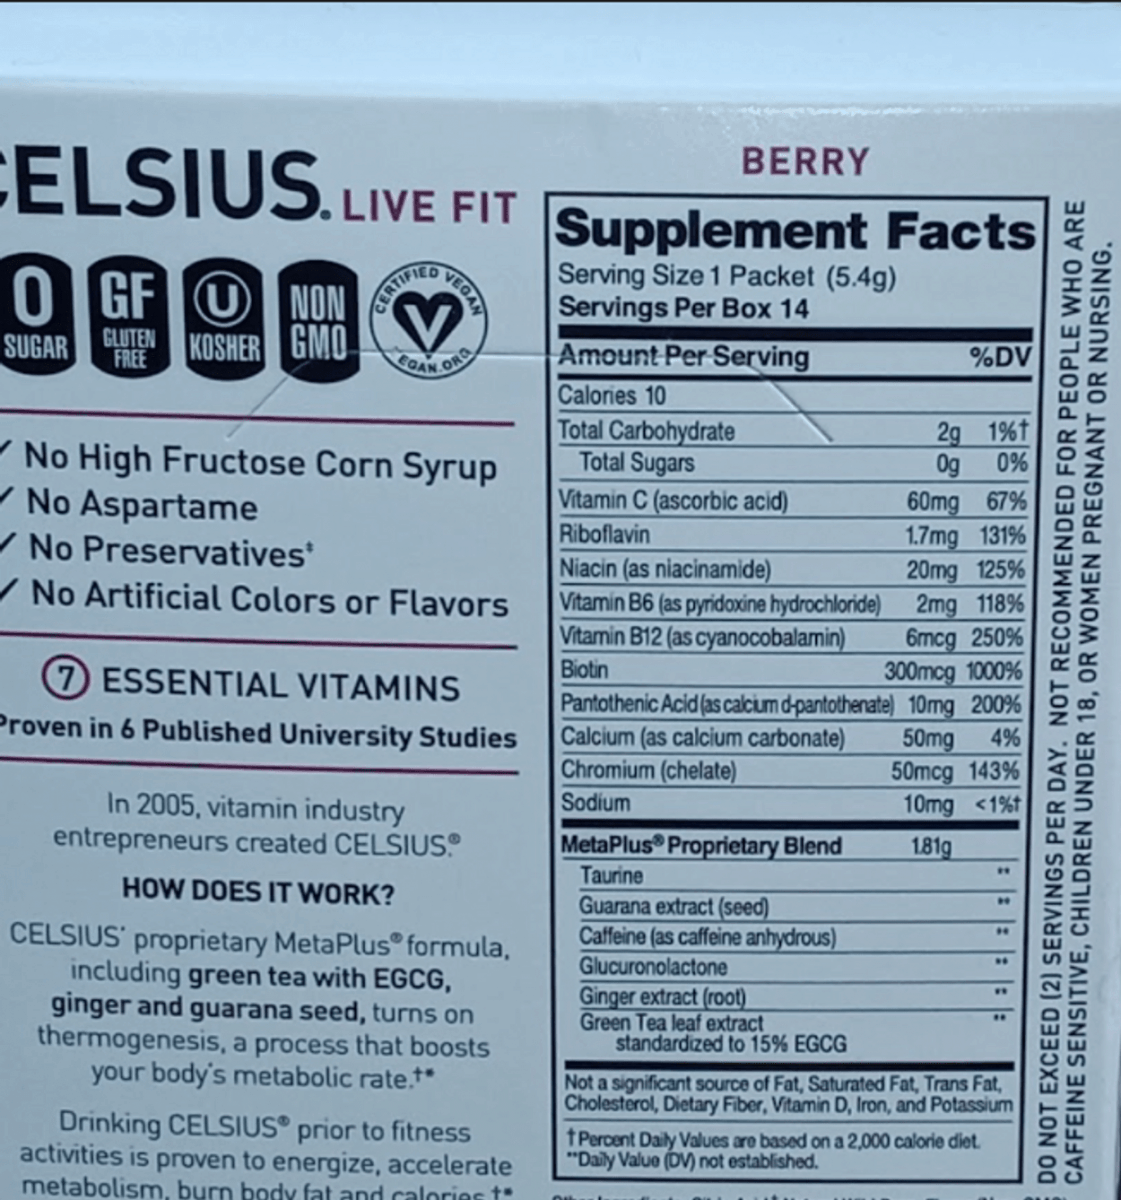 Nutrition facts of Celsius On The Go.